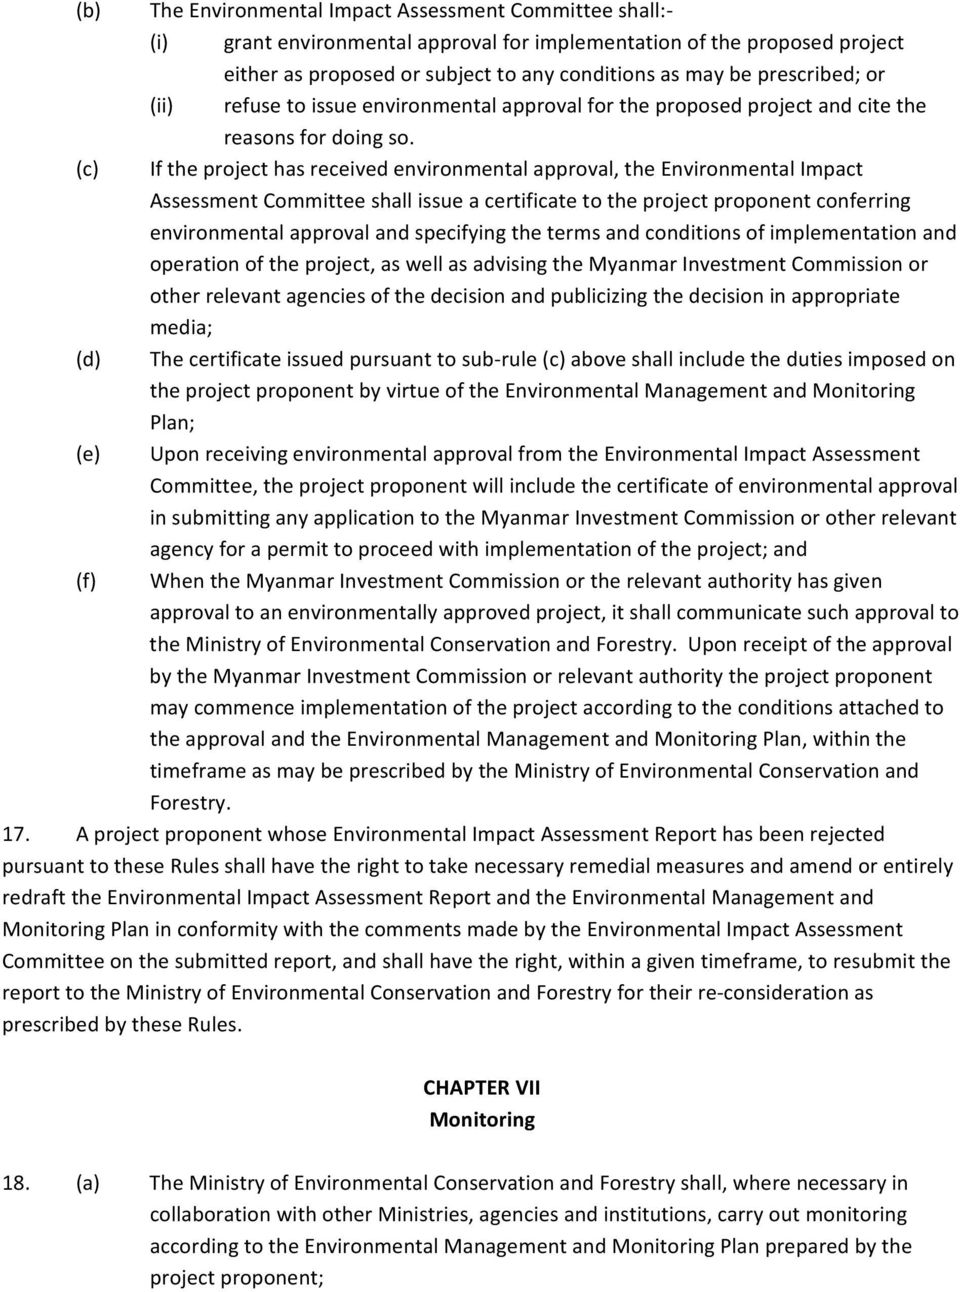 (c) If the project has received environmental approval, the Environmental Impact Assessment Committee shall issue a certificate to the project proponent conferring environmental approval and